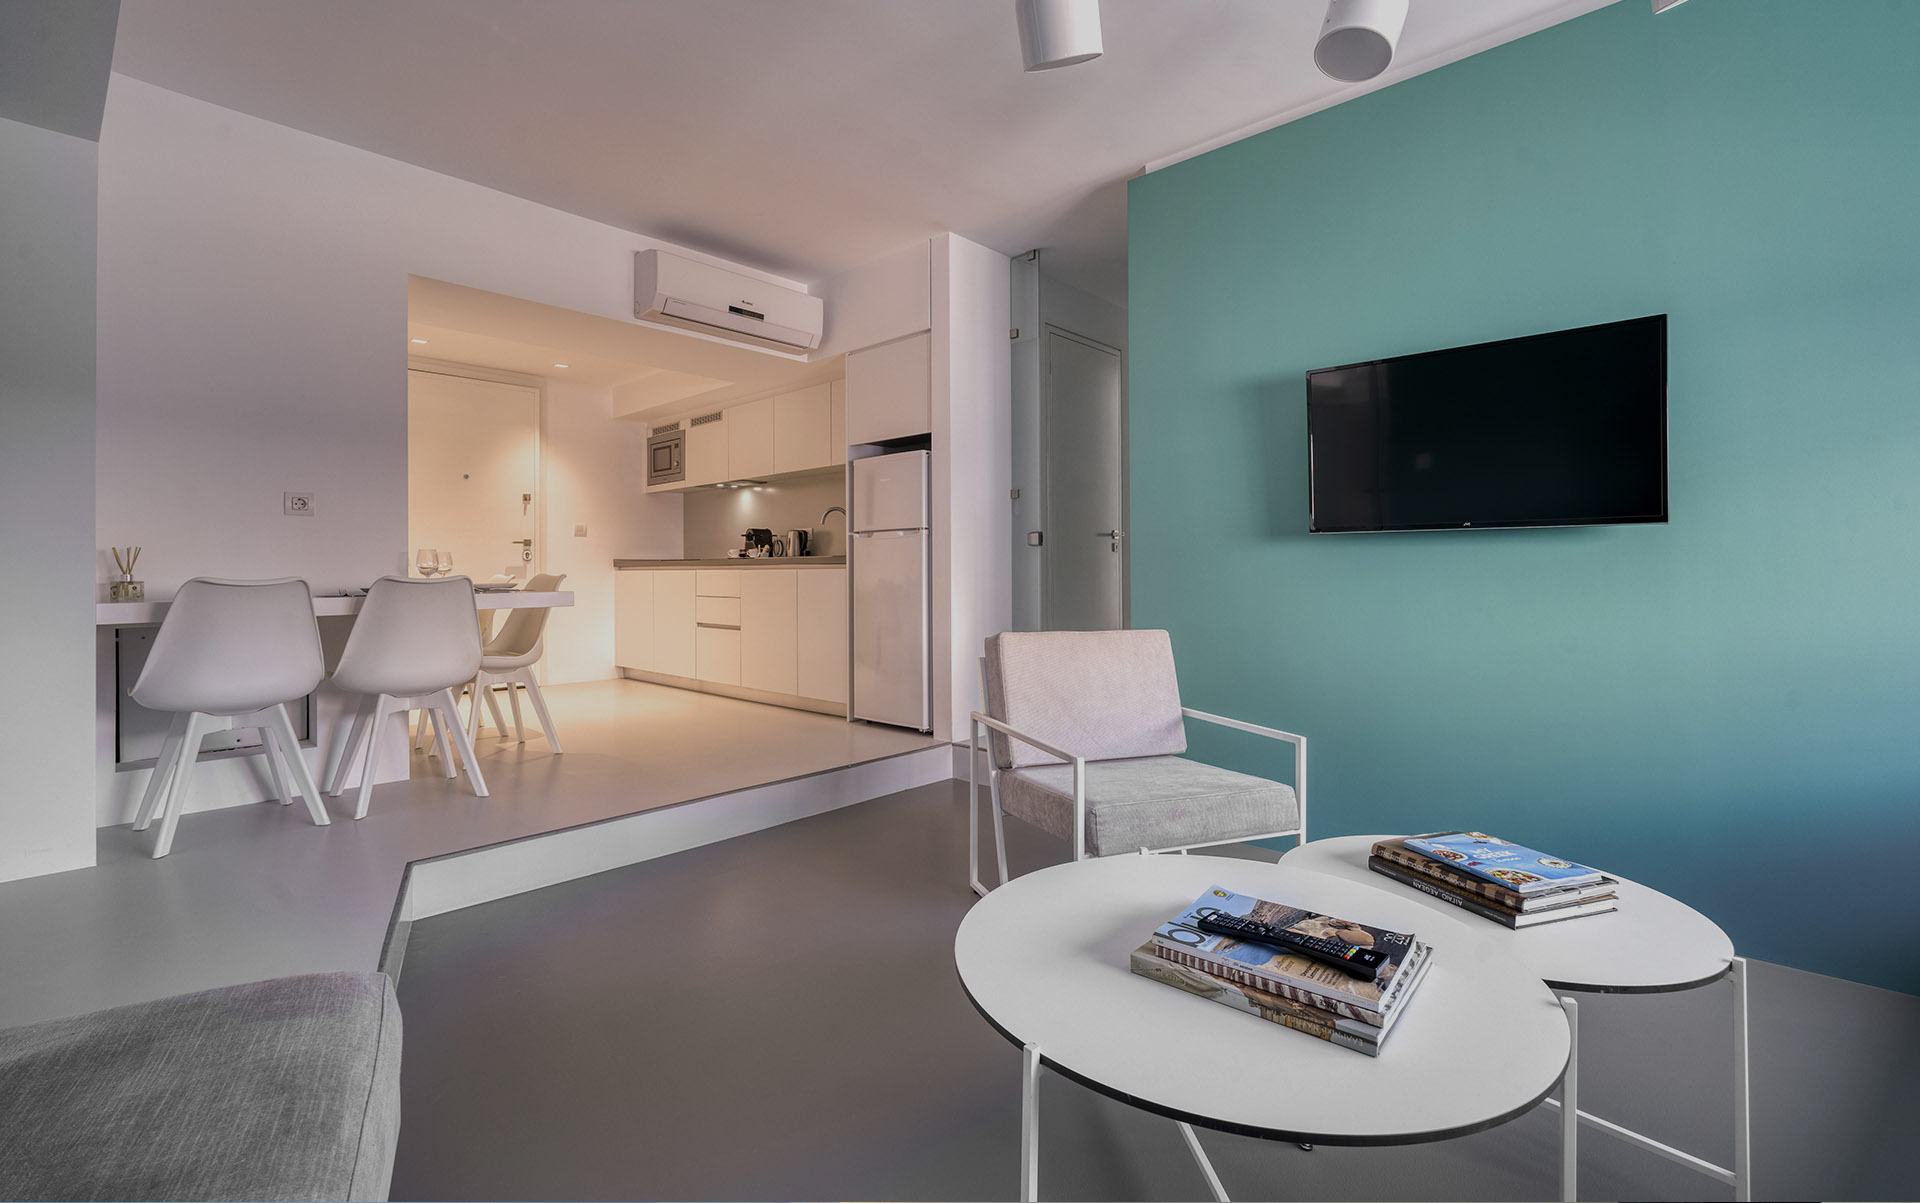 apartments athens center- Athens Color Cube Luxury Apartments